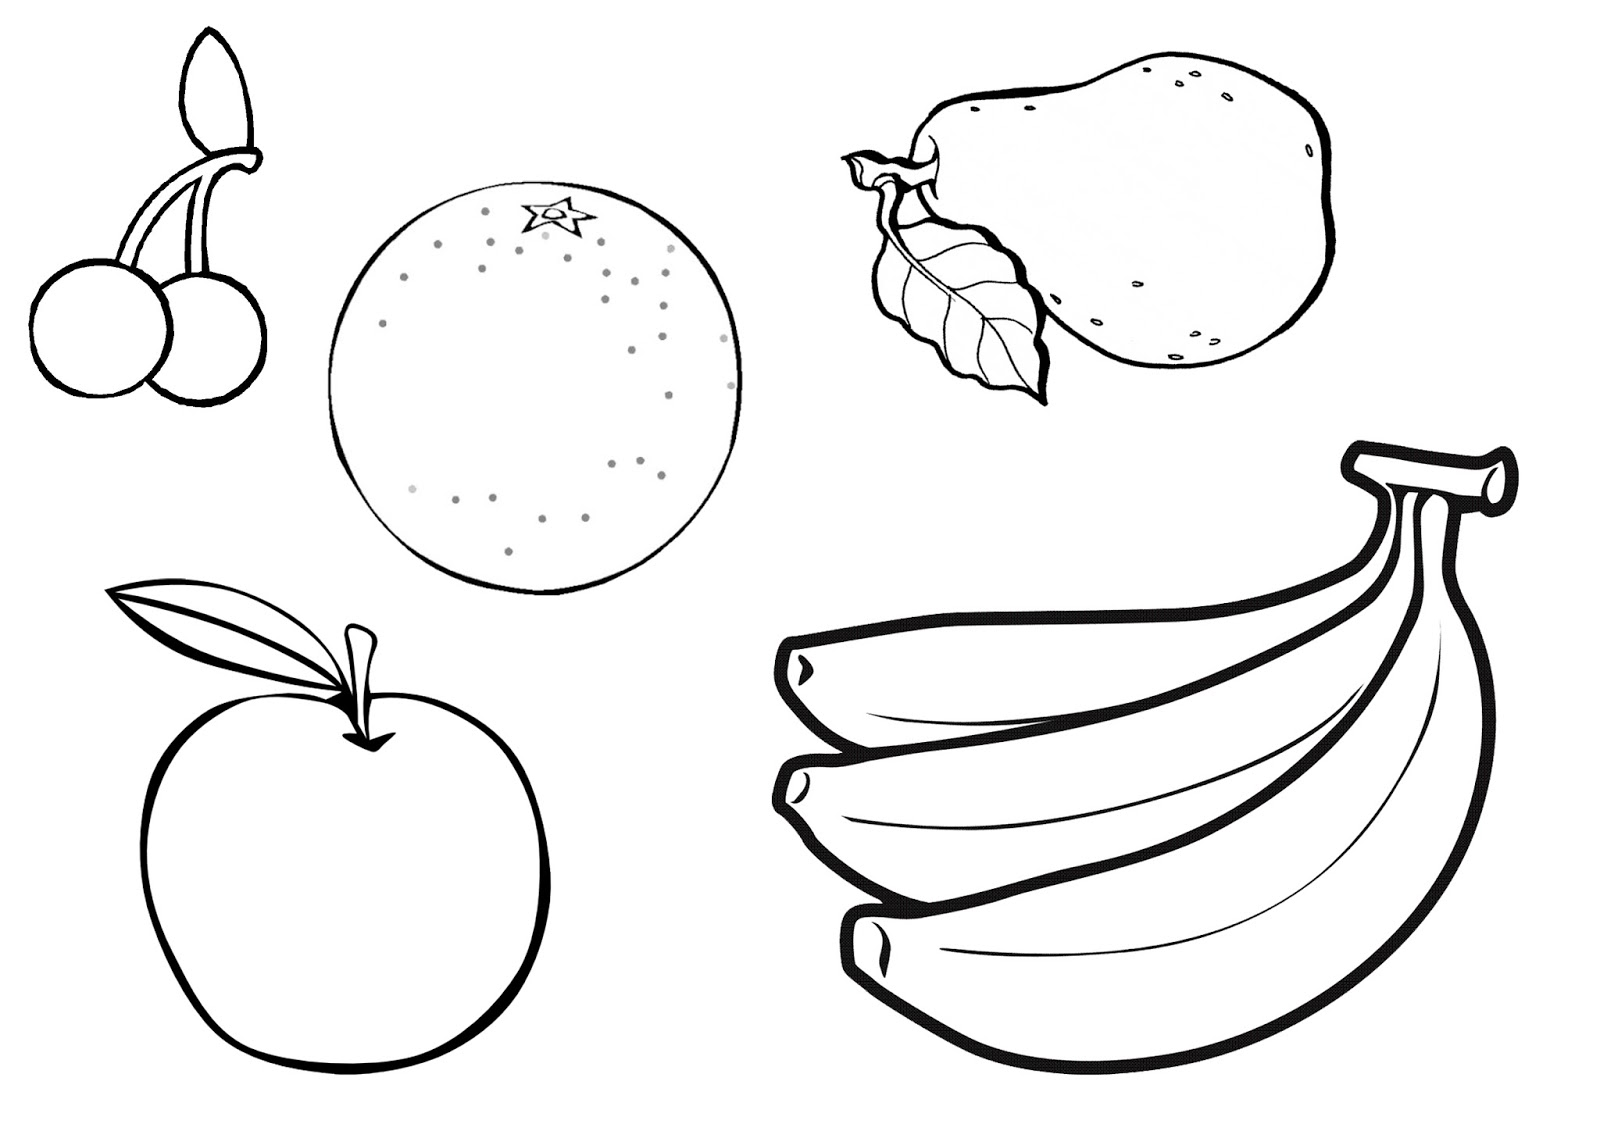 fruit coloring pineapple coloring pages download and print pineapple fruit coloring